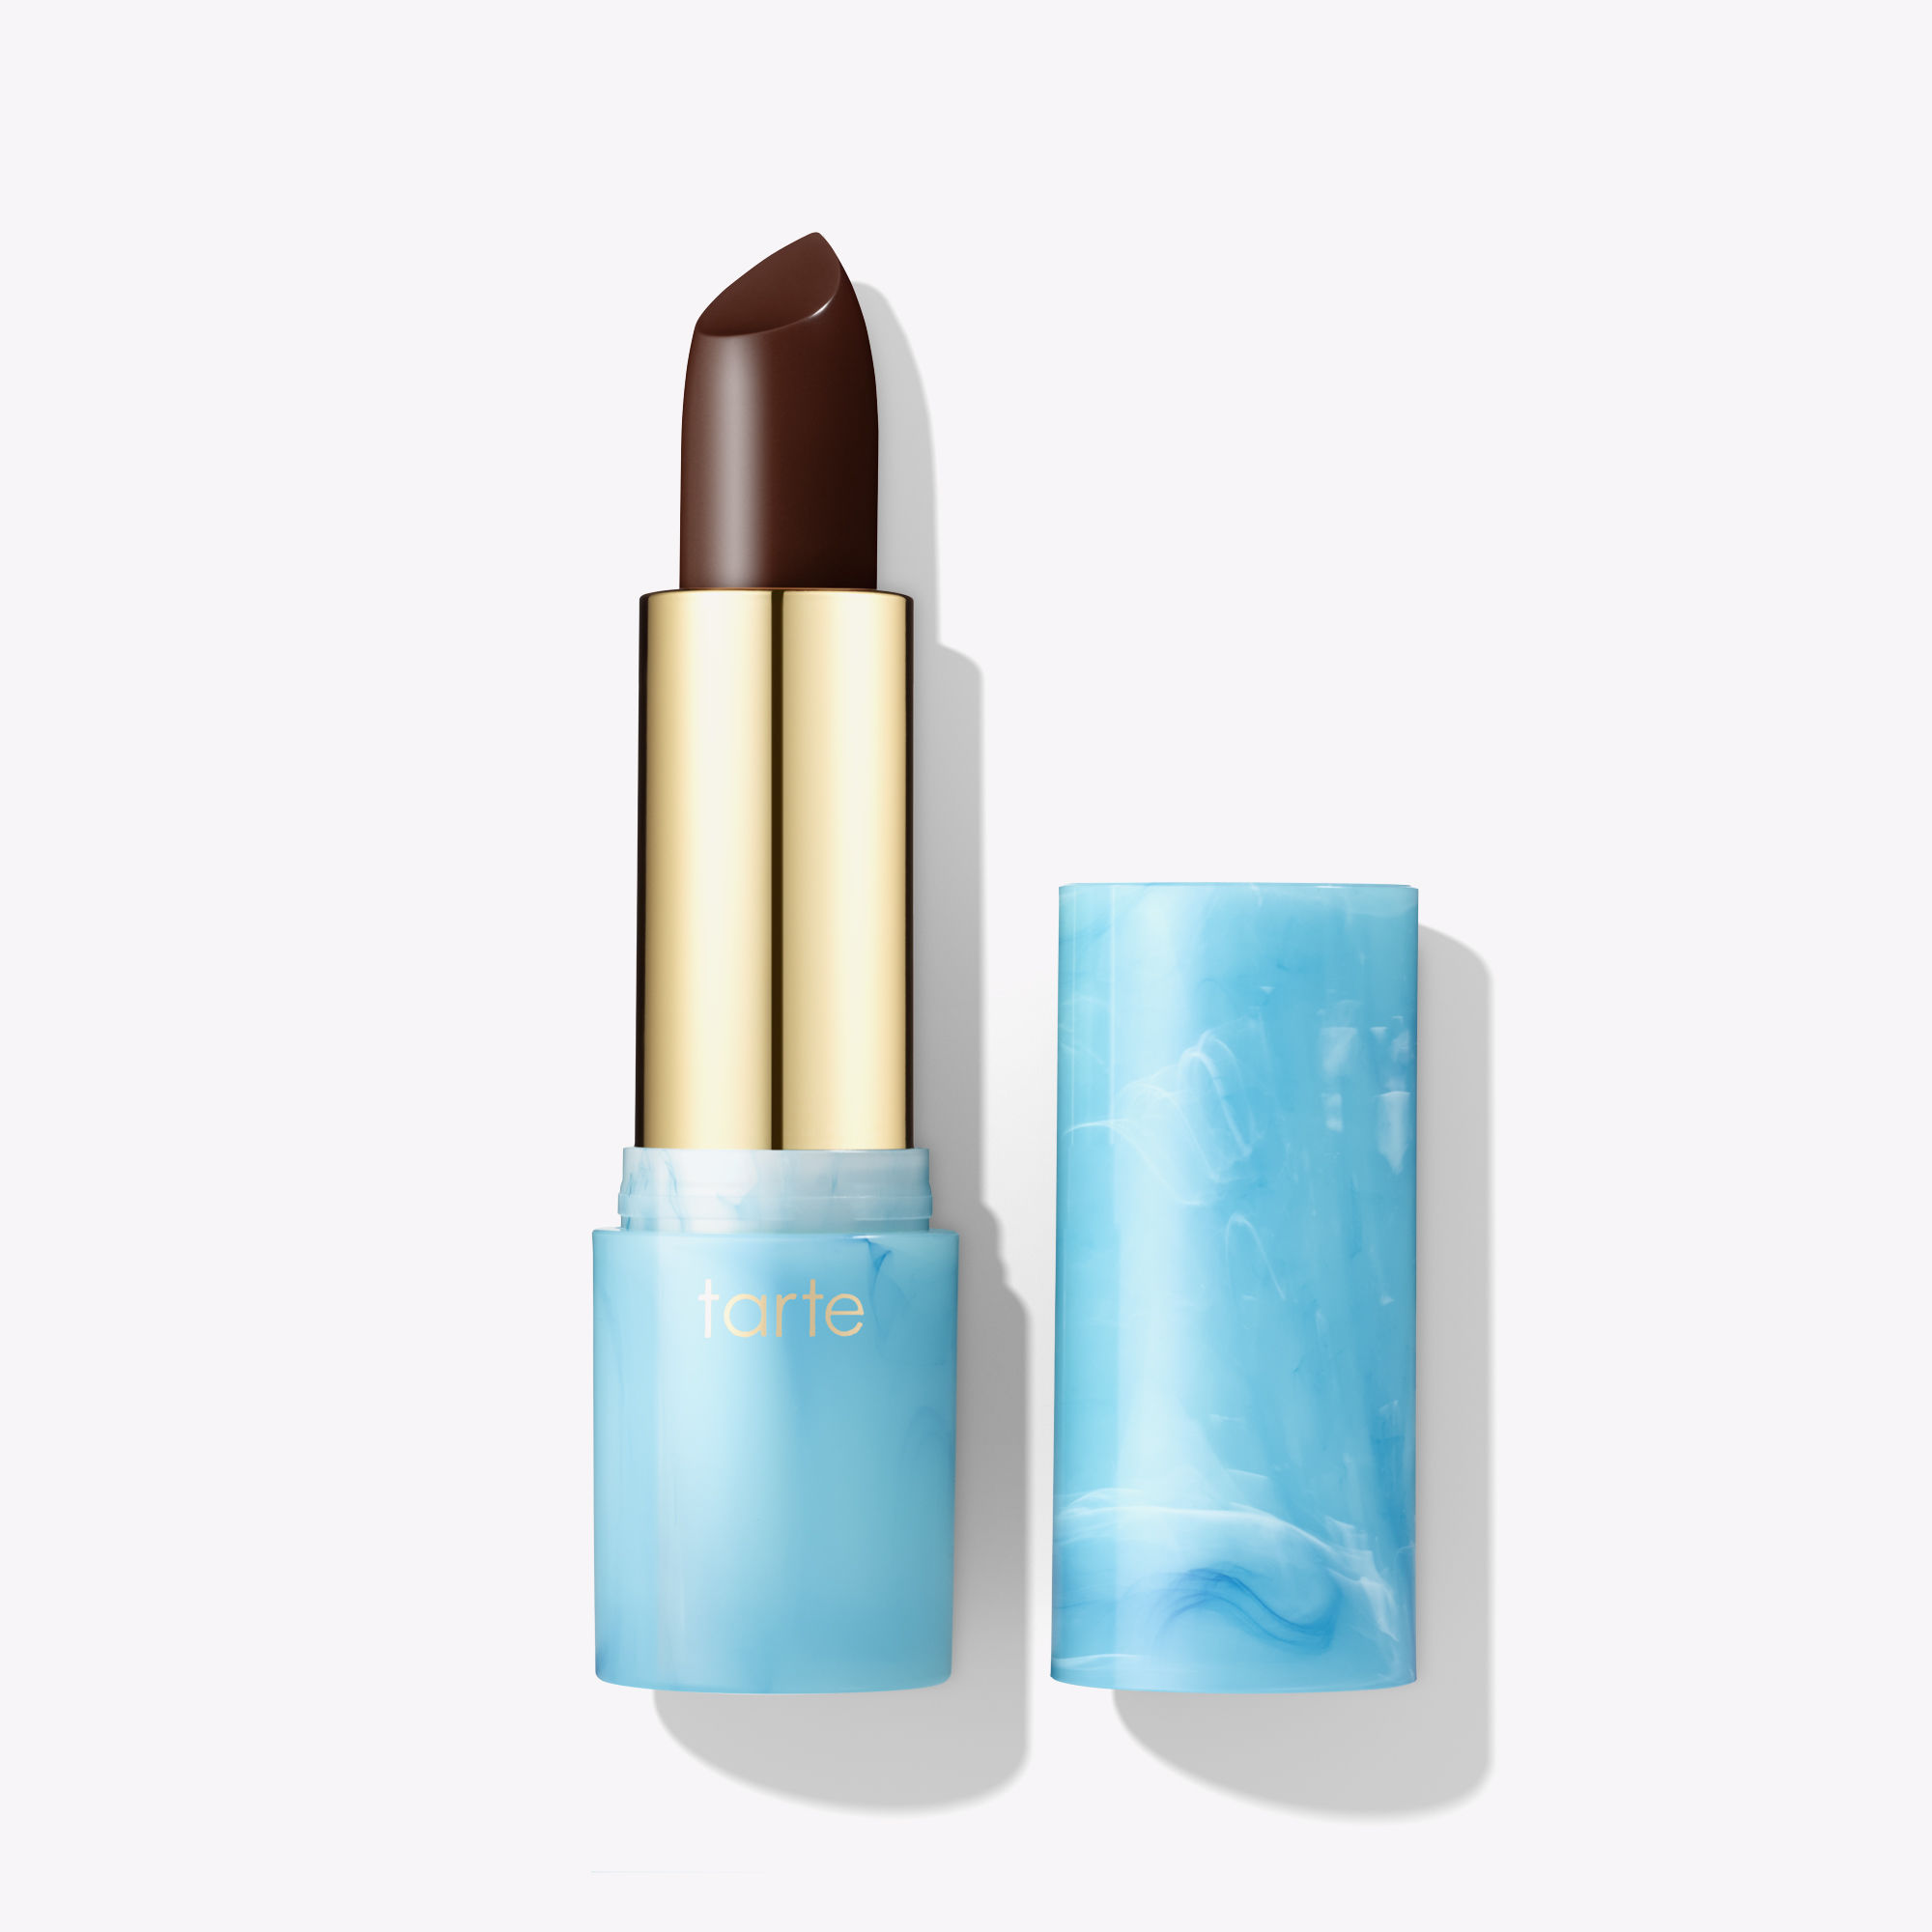 tarte Color Splash Hydrating Lipstick